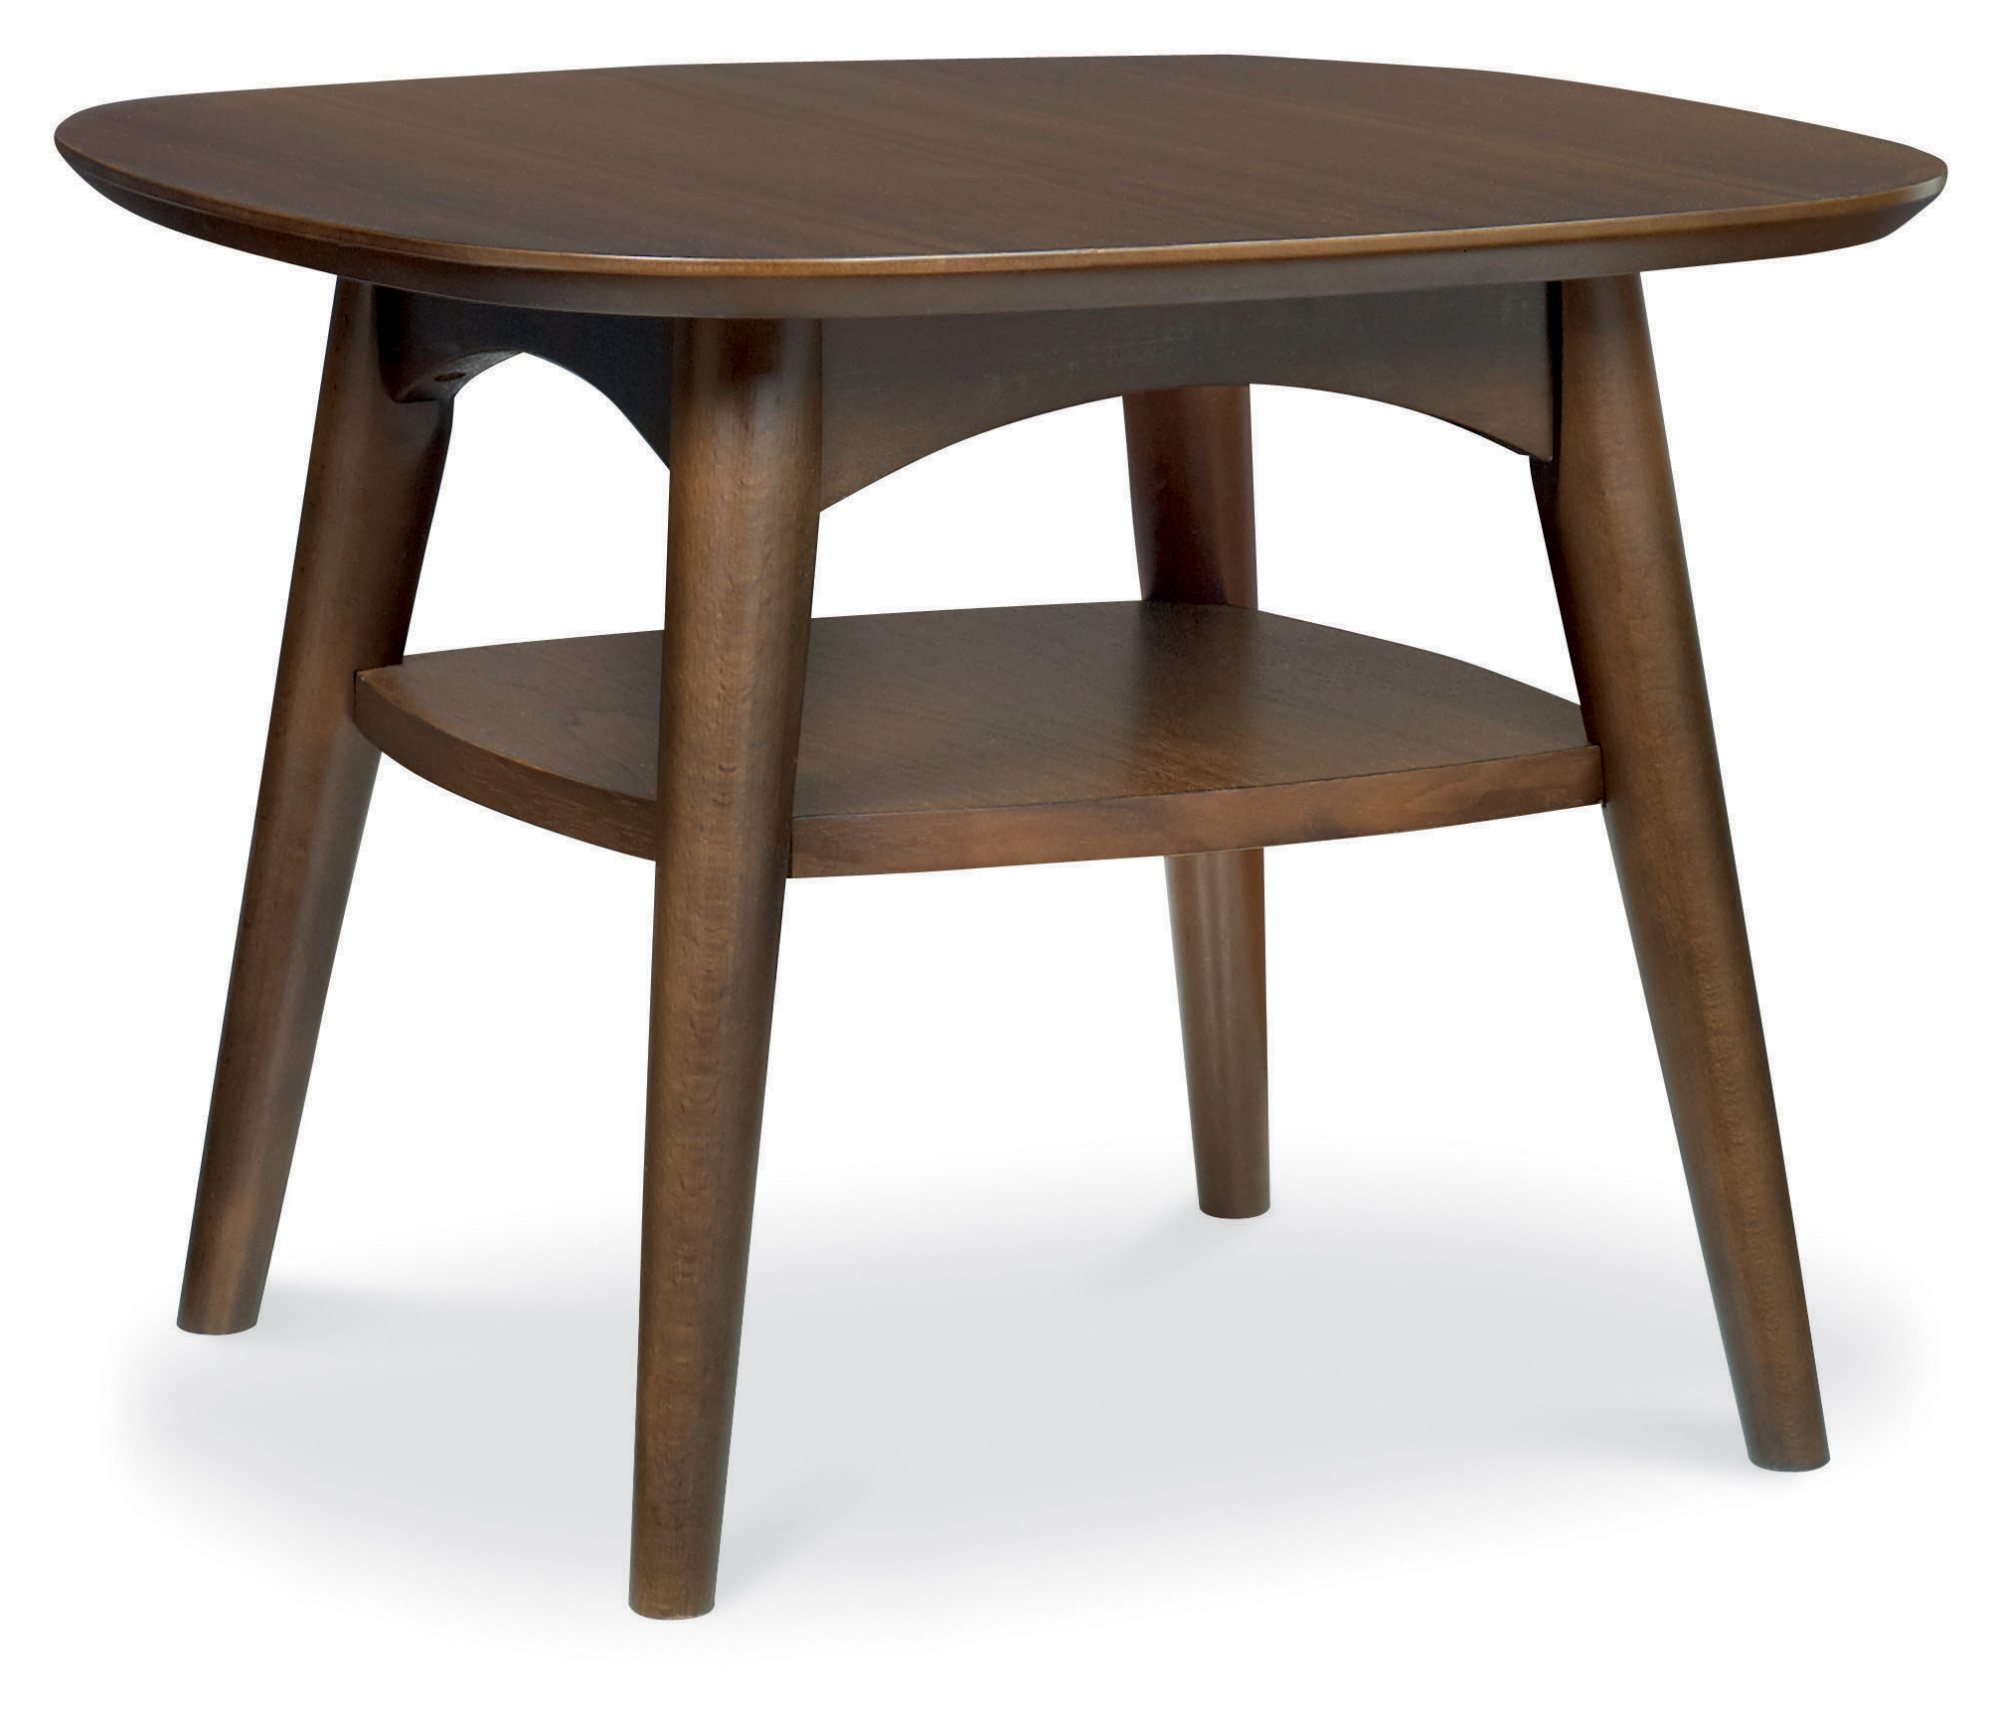 RETRO WALNUT SIDE TABLE WITH SHELF L55cm x D55cm x H40cm